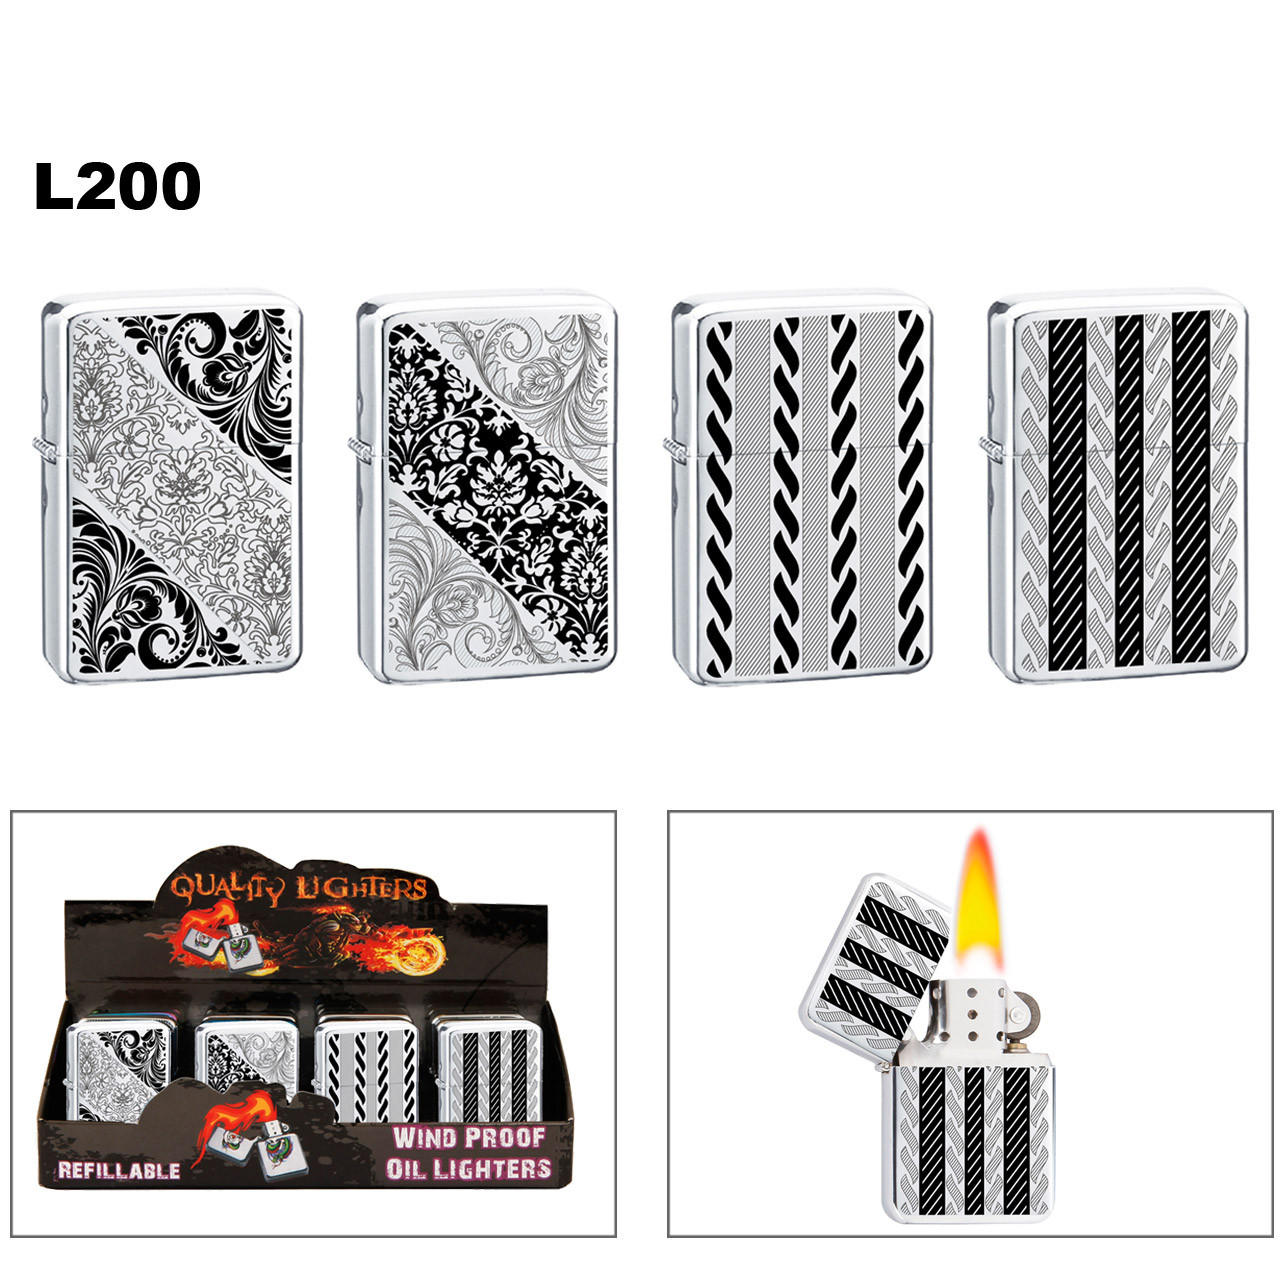 Wholesale Lighters ~ Lighter Fluid NOT Included L200 (12 pcs.) Graphic Patterns on Polished Chrome